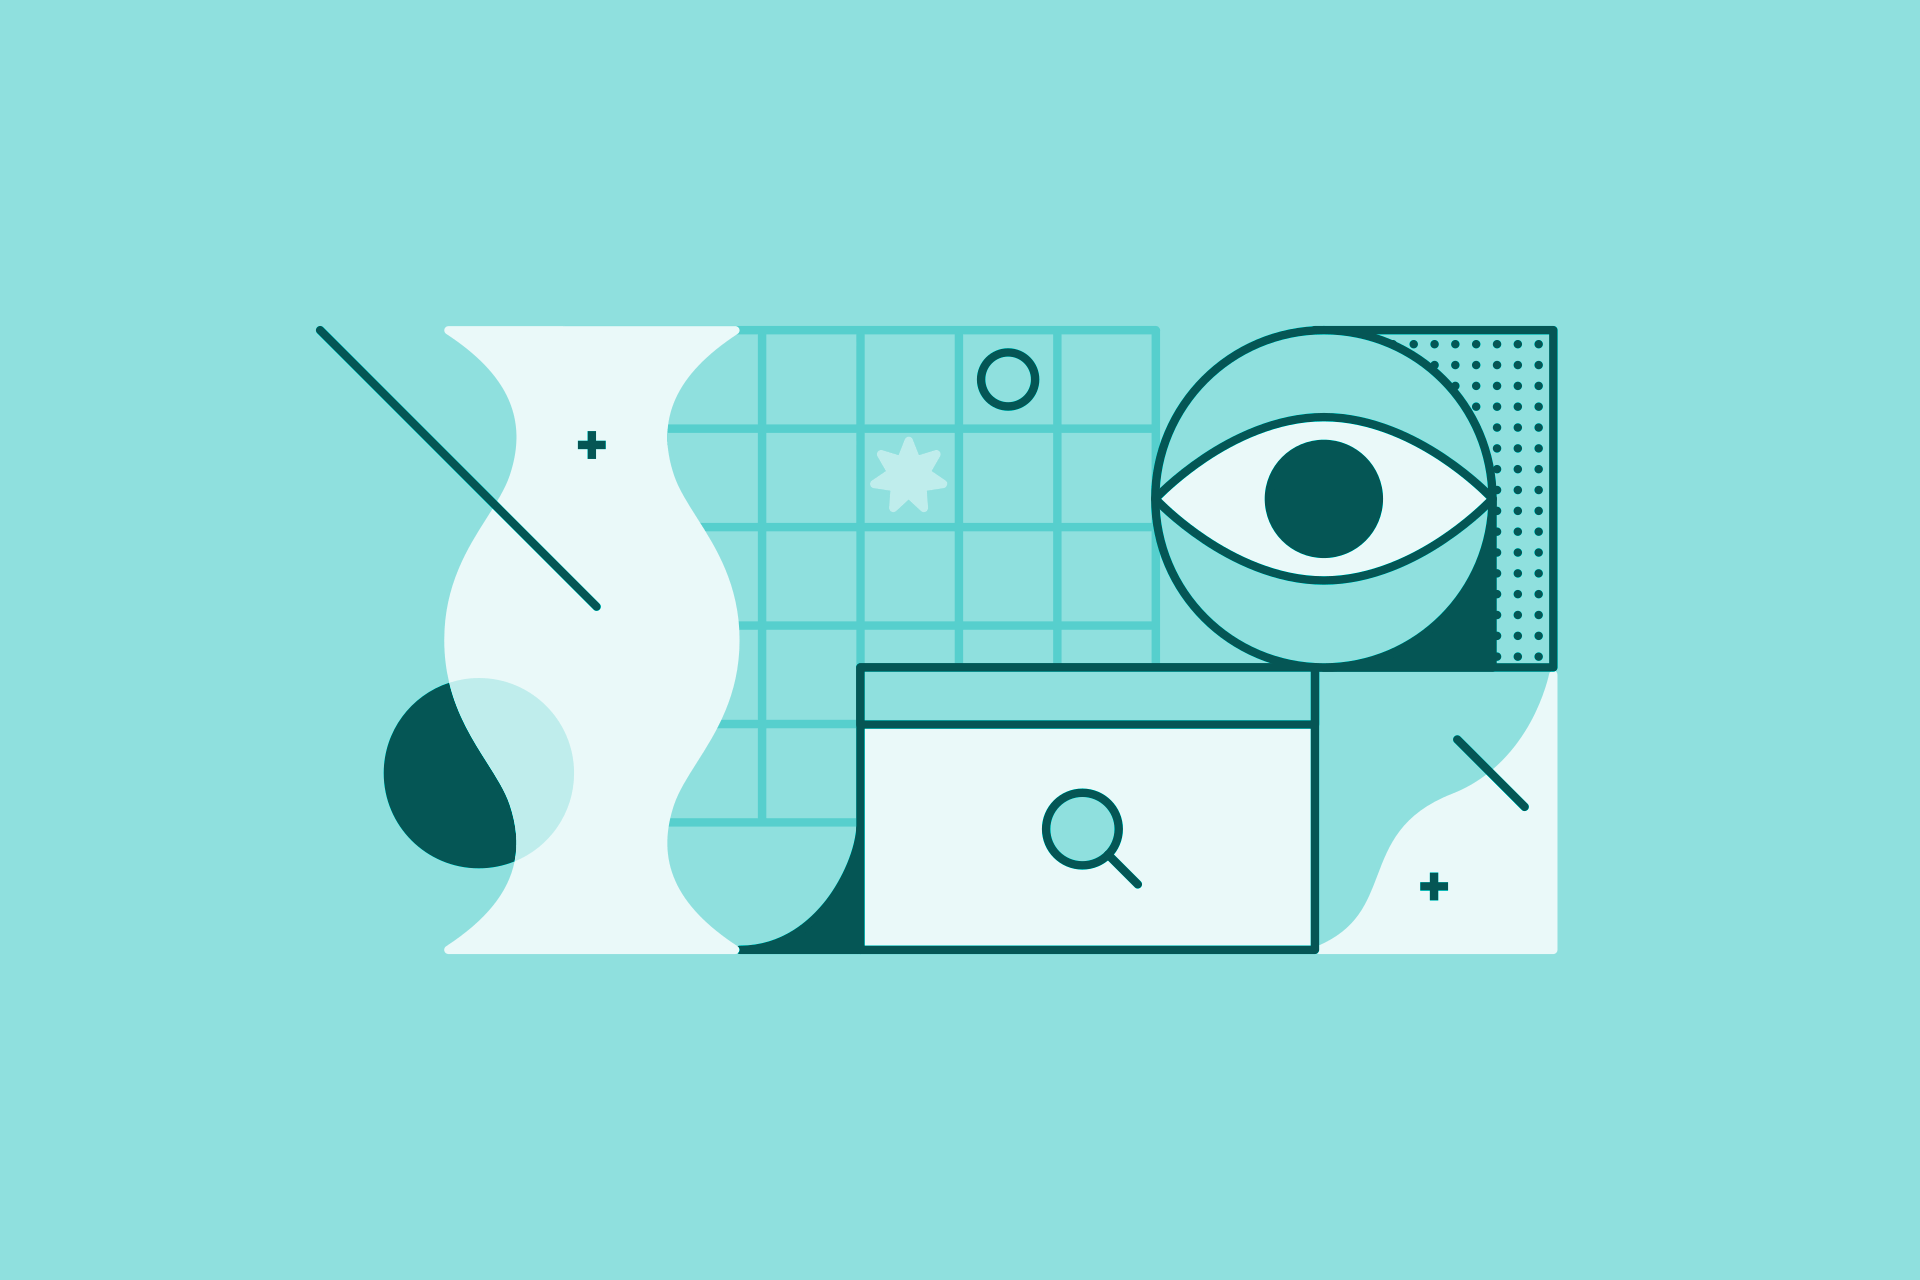 Abstract illustration of web browser, eye, and various shapes